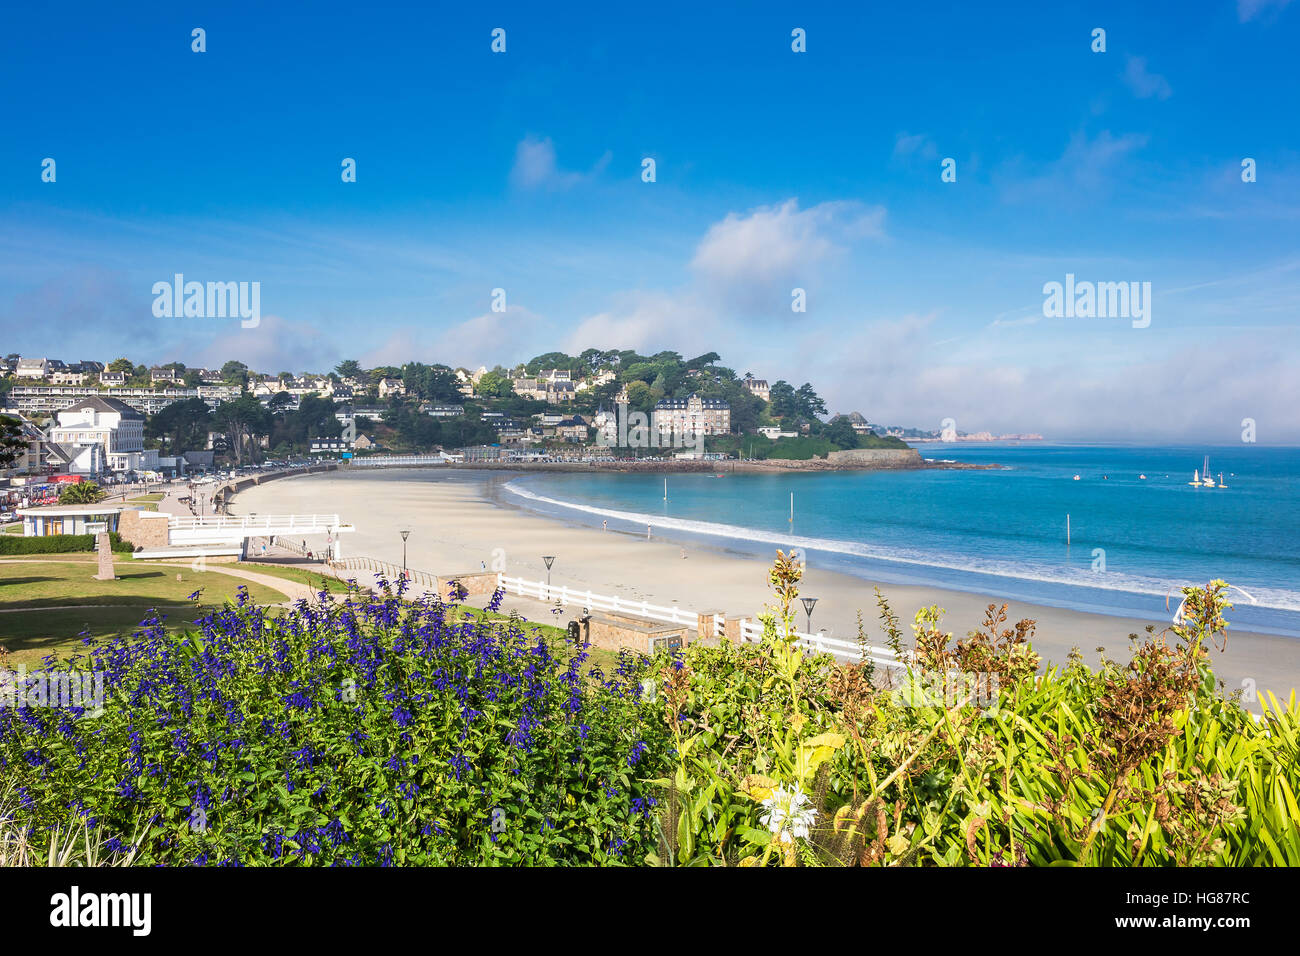 View to the city Perros-Guirec in Brittany, France - Stock Image